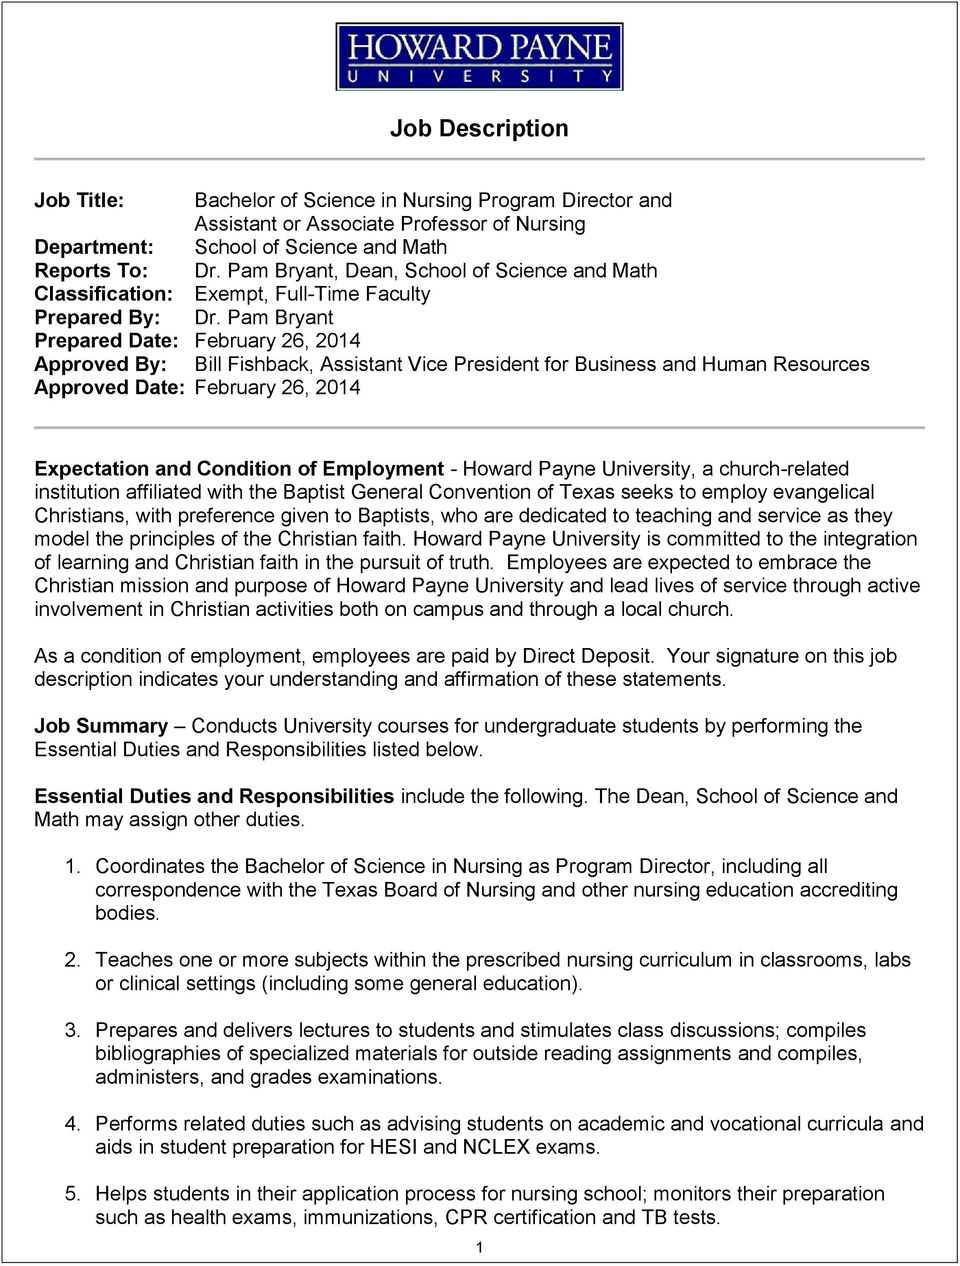 Pam Bryant Prepared Date: February 26, 2014 Approved By: Bill Fishback, Assistant Vice President for Business and Human Resources Approved Date: February 26, 2014 Expectation and Condition of